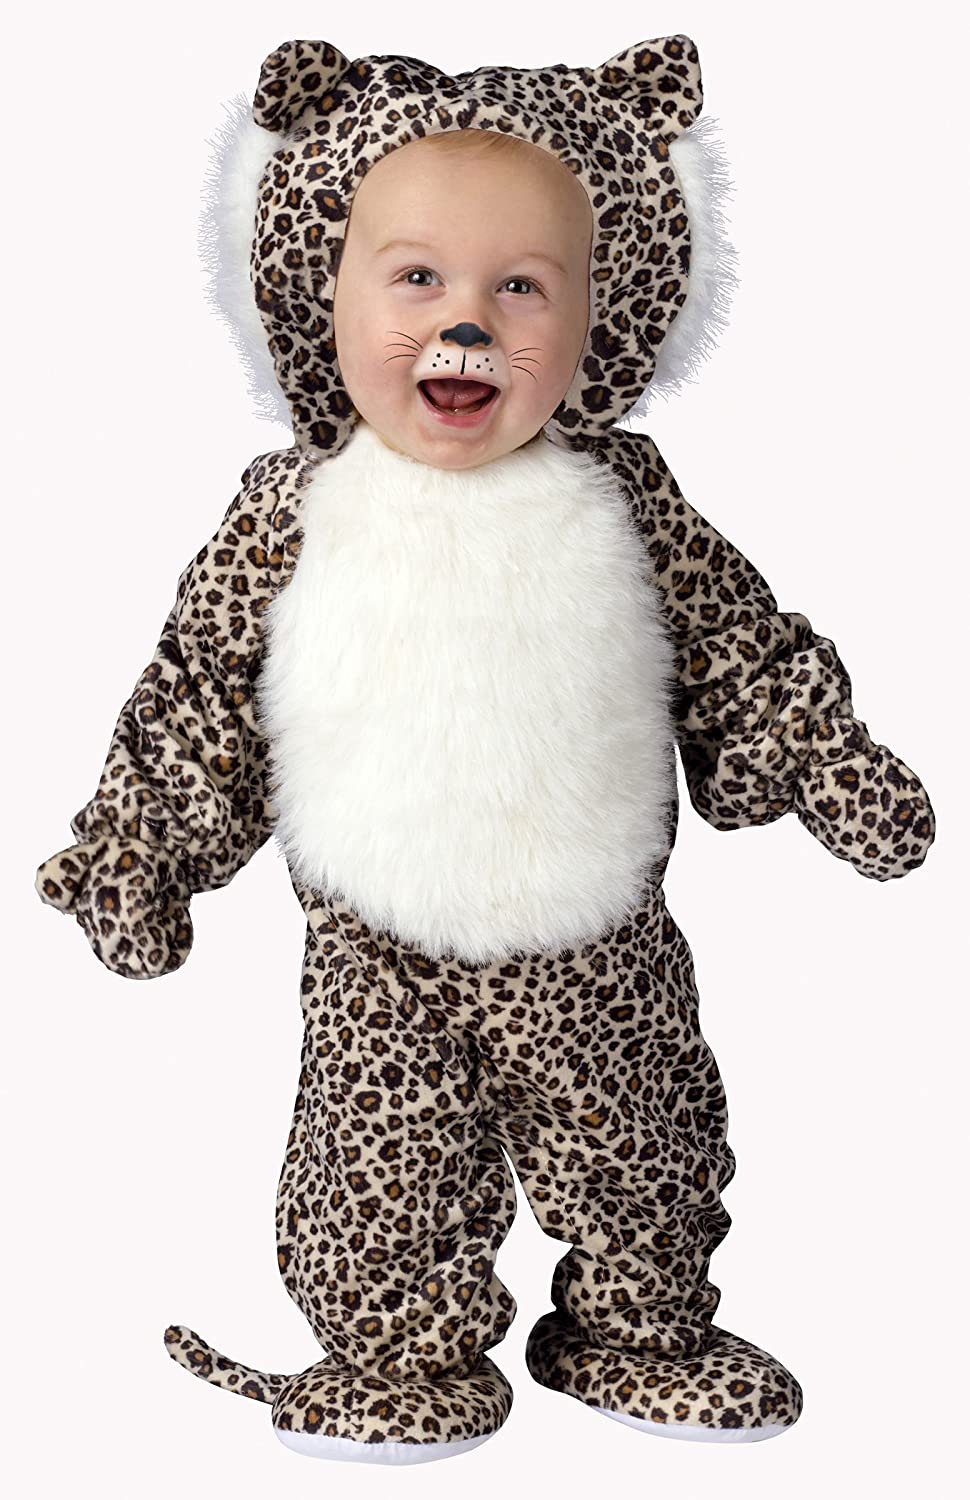 Fun World Costumes Baby's Li'L Leopard Infant Costume, braun schwarz Weiß, Small